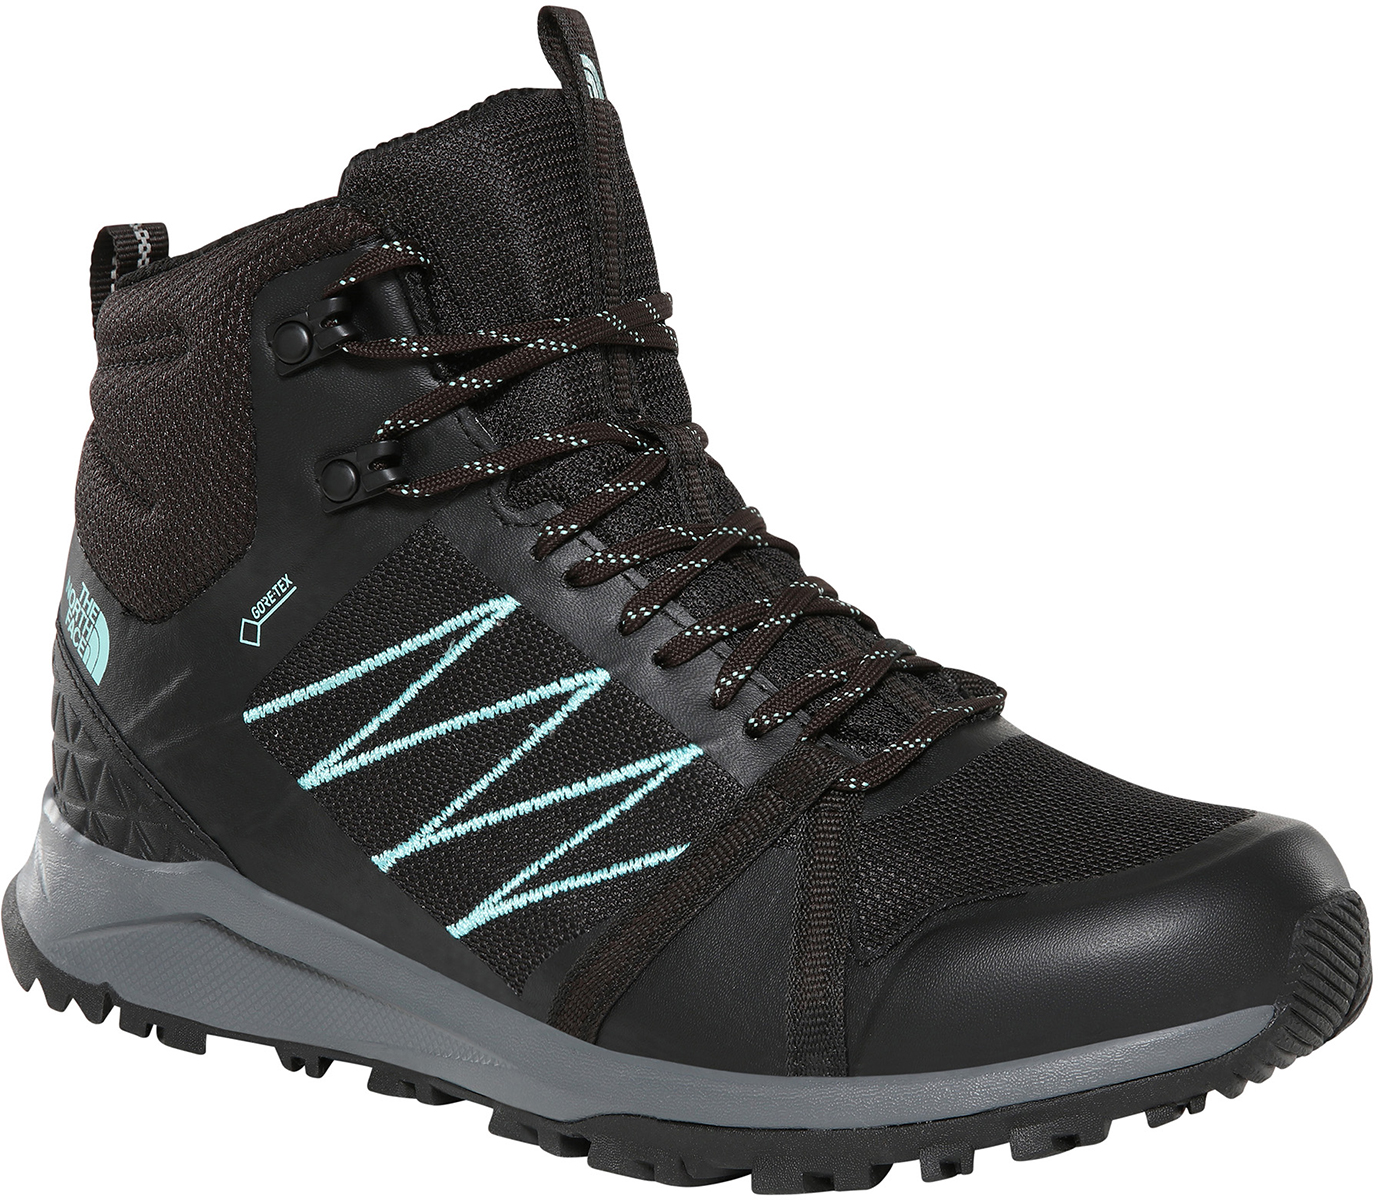 The North Face Women's Litewave Fastpack Mid GORE-TEX® Shoes | Running shoes